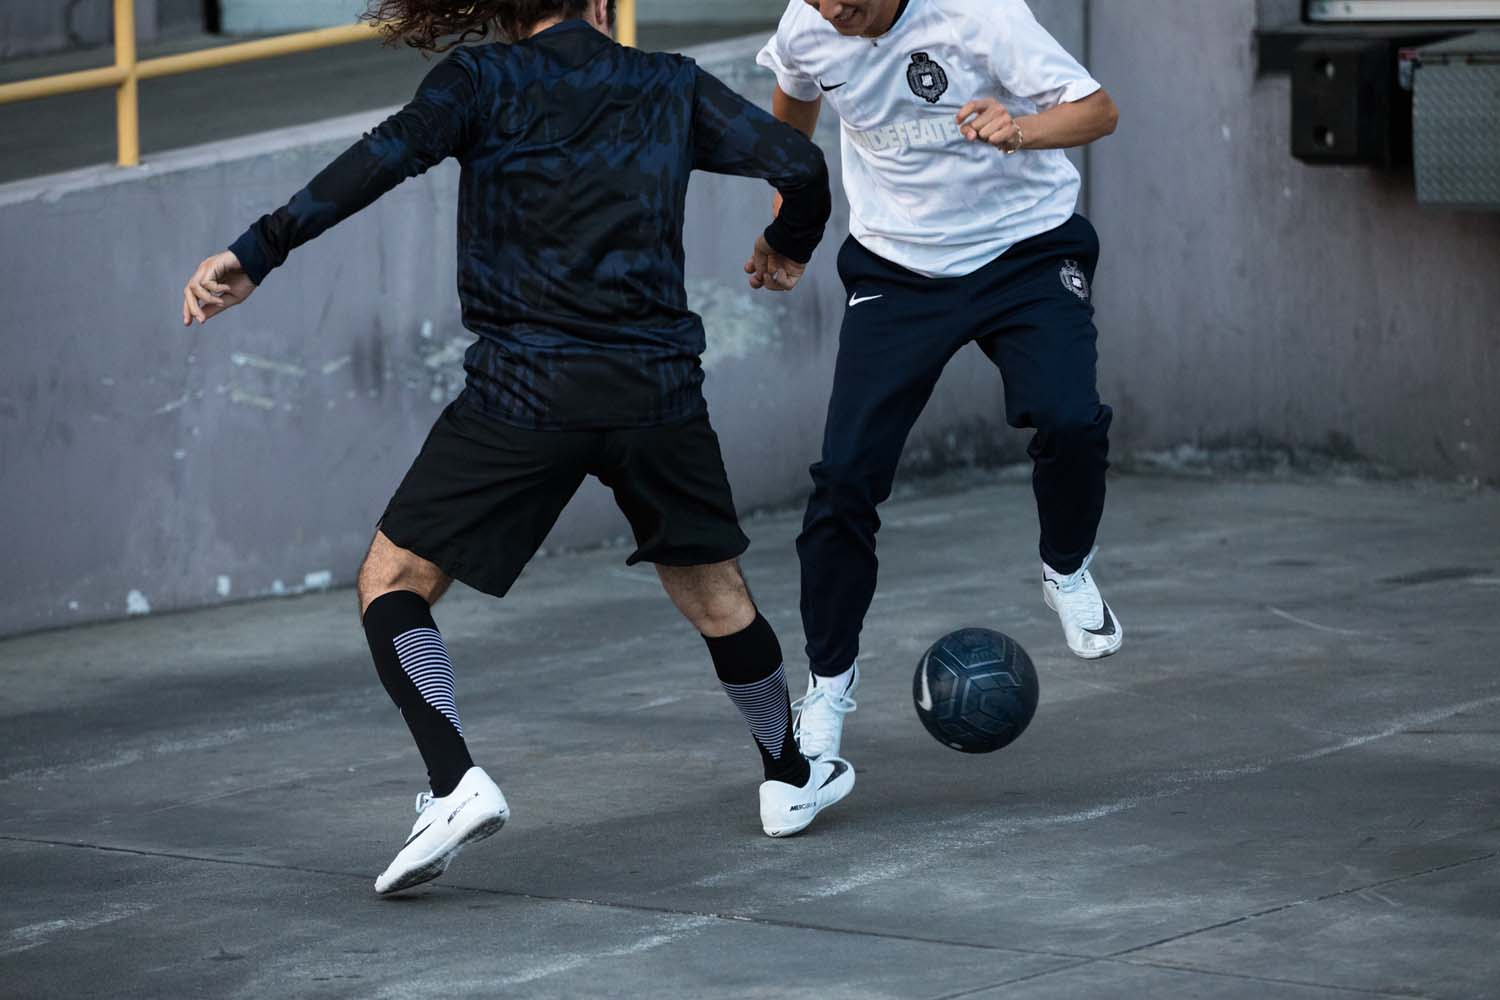 UNDEFEATED x Nike 2018 FIFA World Cup Capsule Collection Soccer Football Jerseys Event Pop-Up Tournament